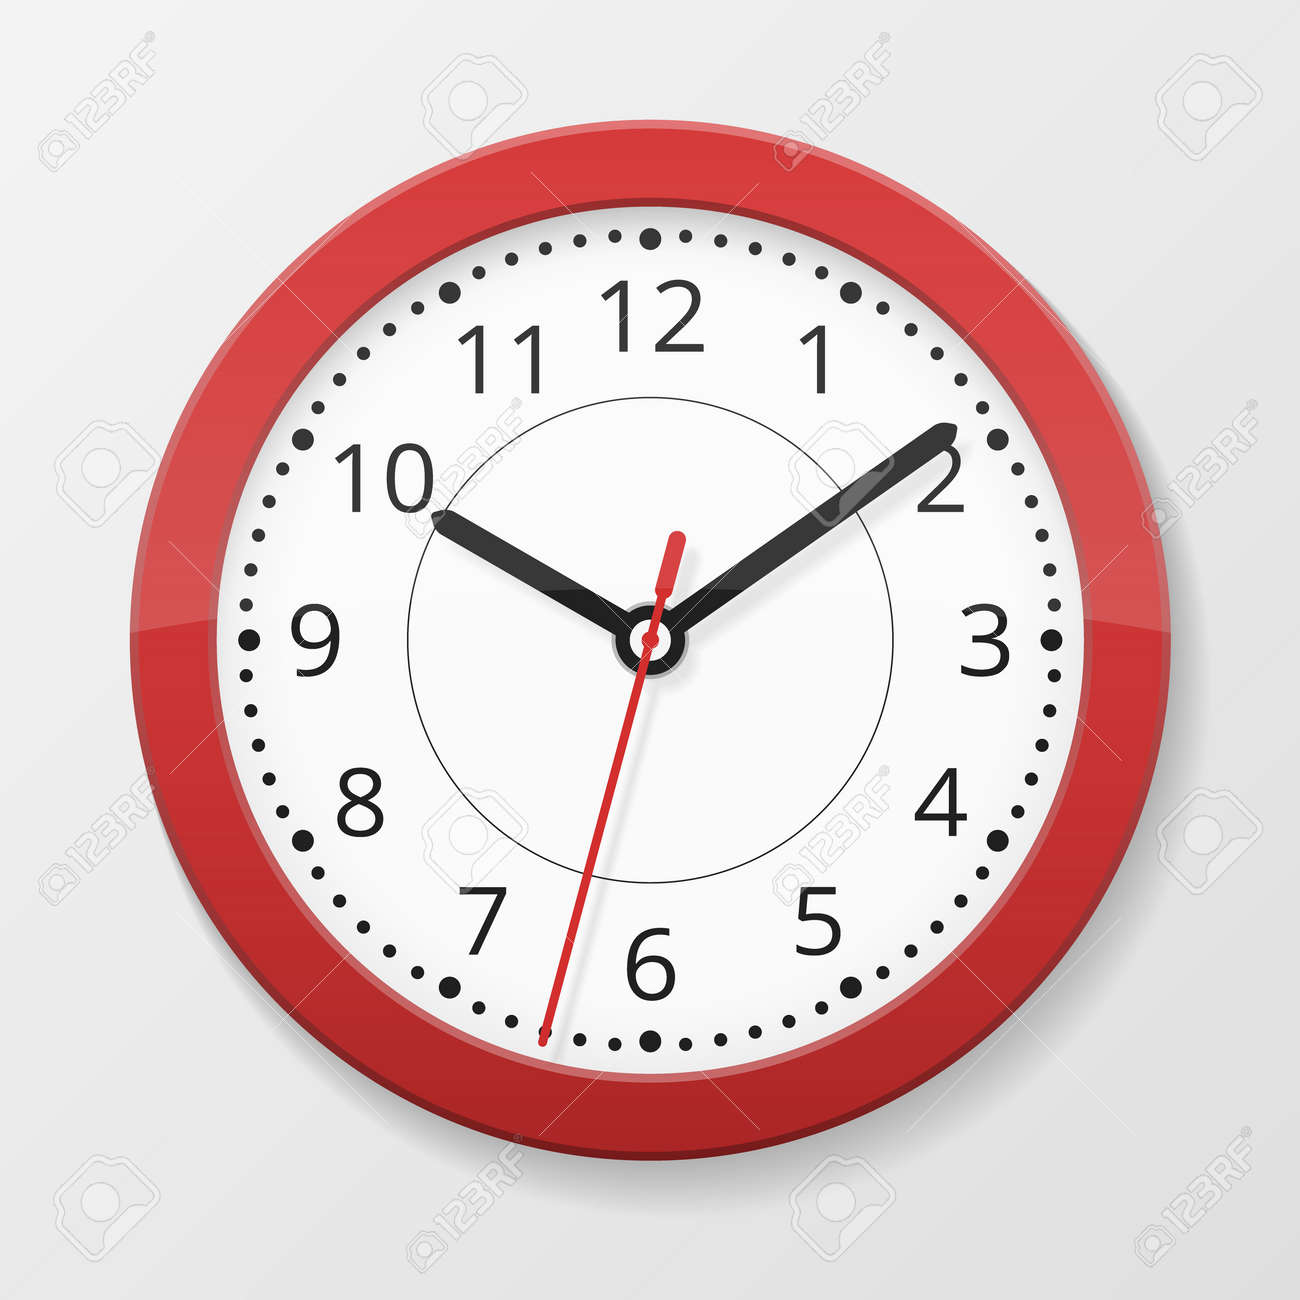 Round wall quartz clock in red color isolated on white background with seconds arrow, vector illustration - 167187318